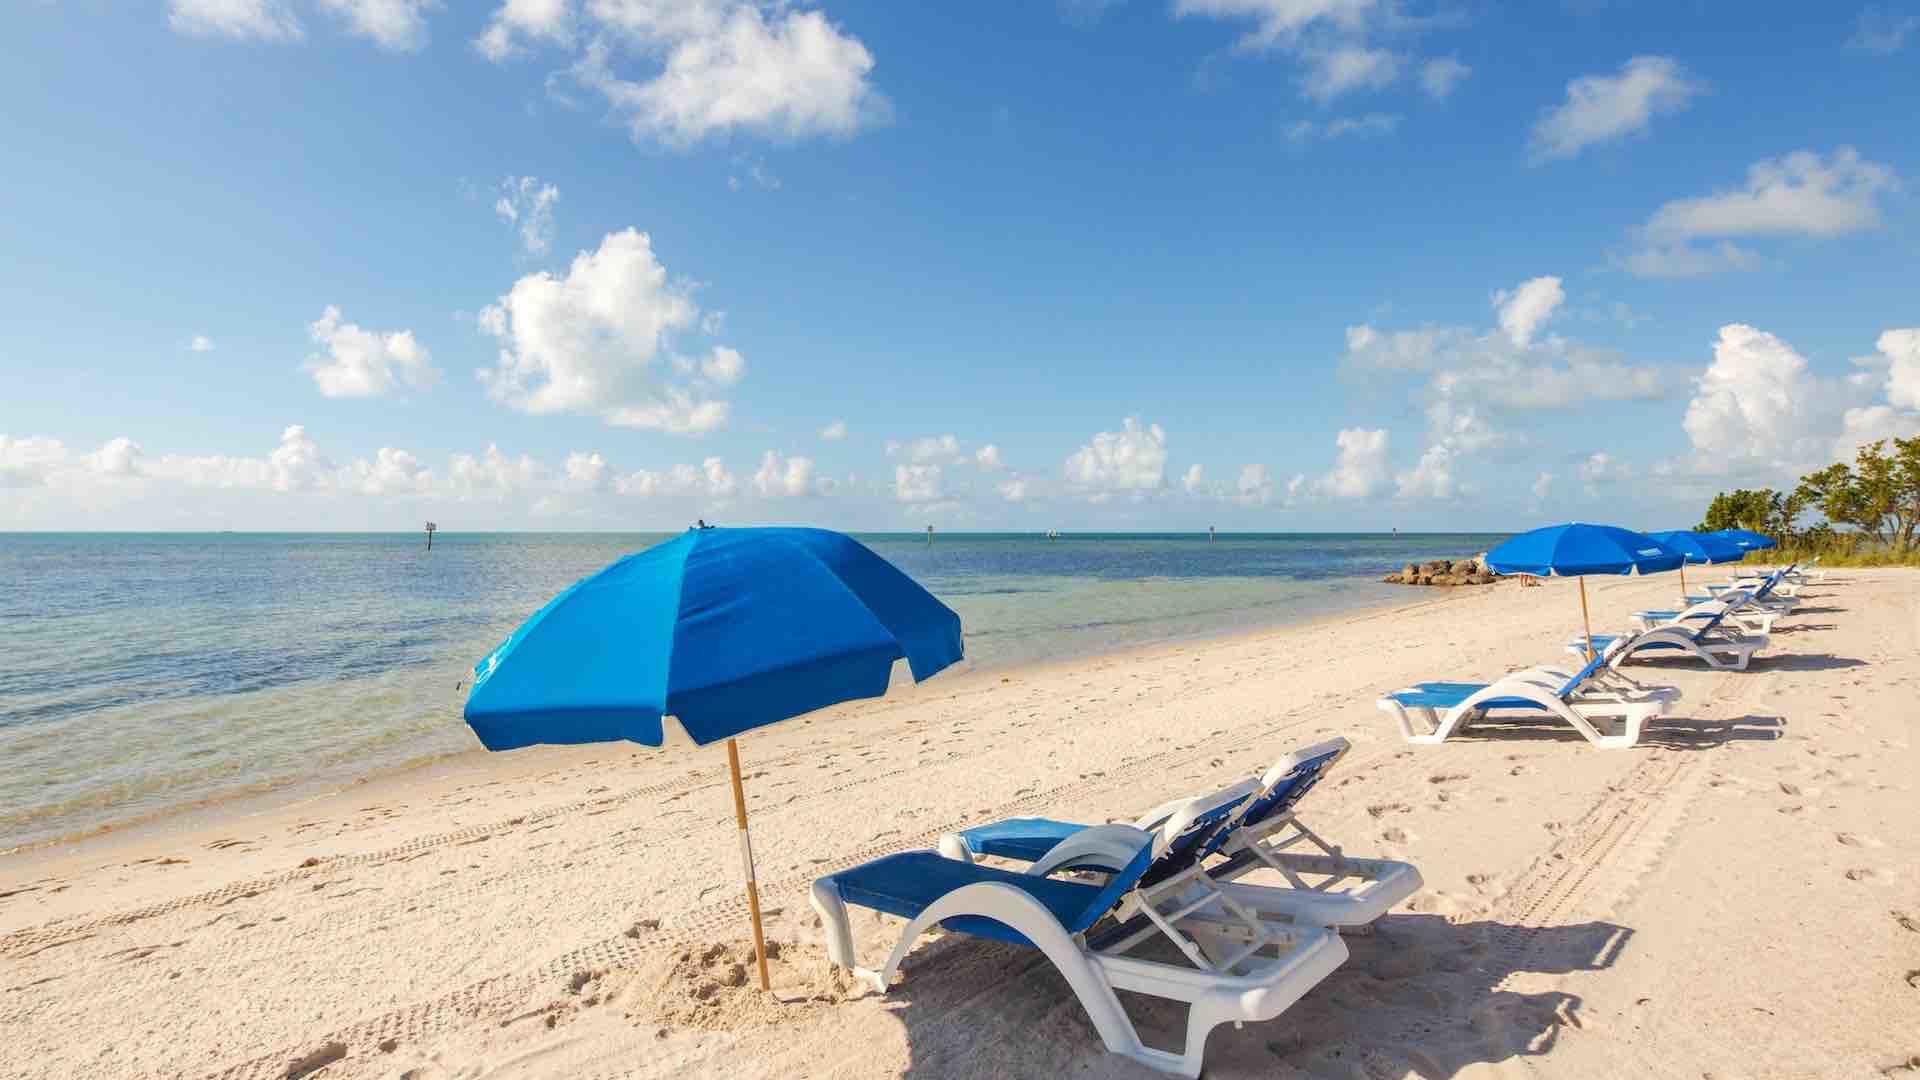 Both nearby beaches offer chair and umbrella rentals...